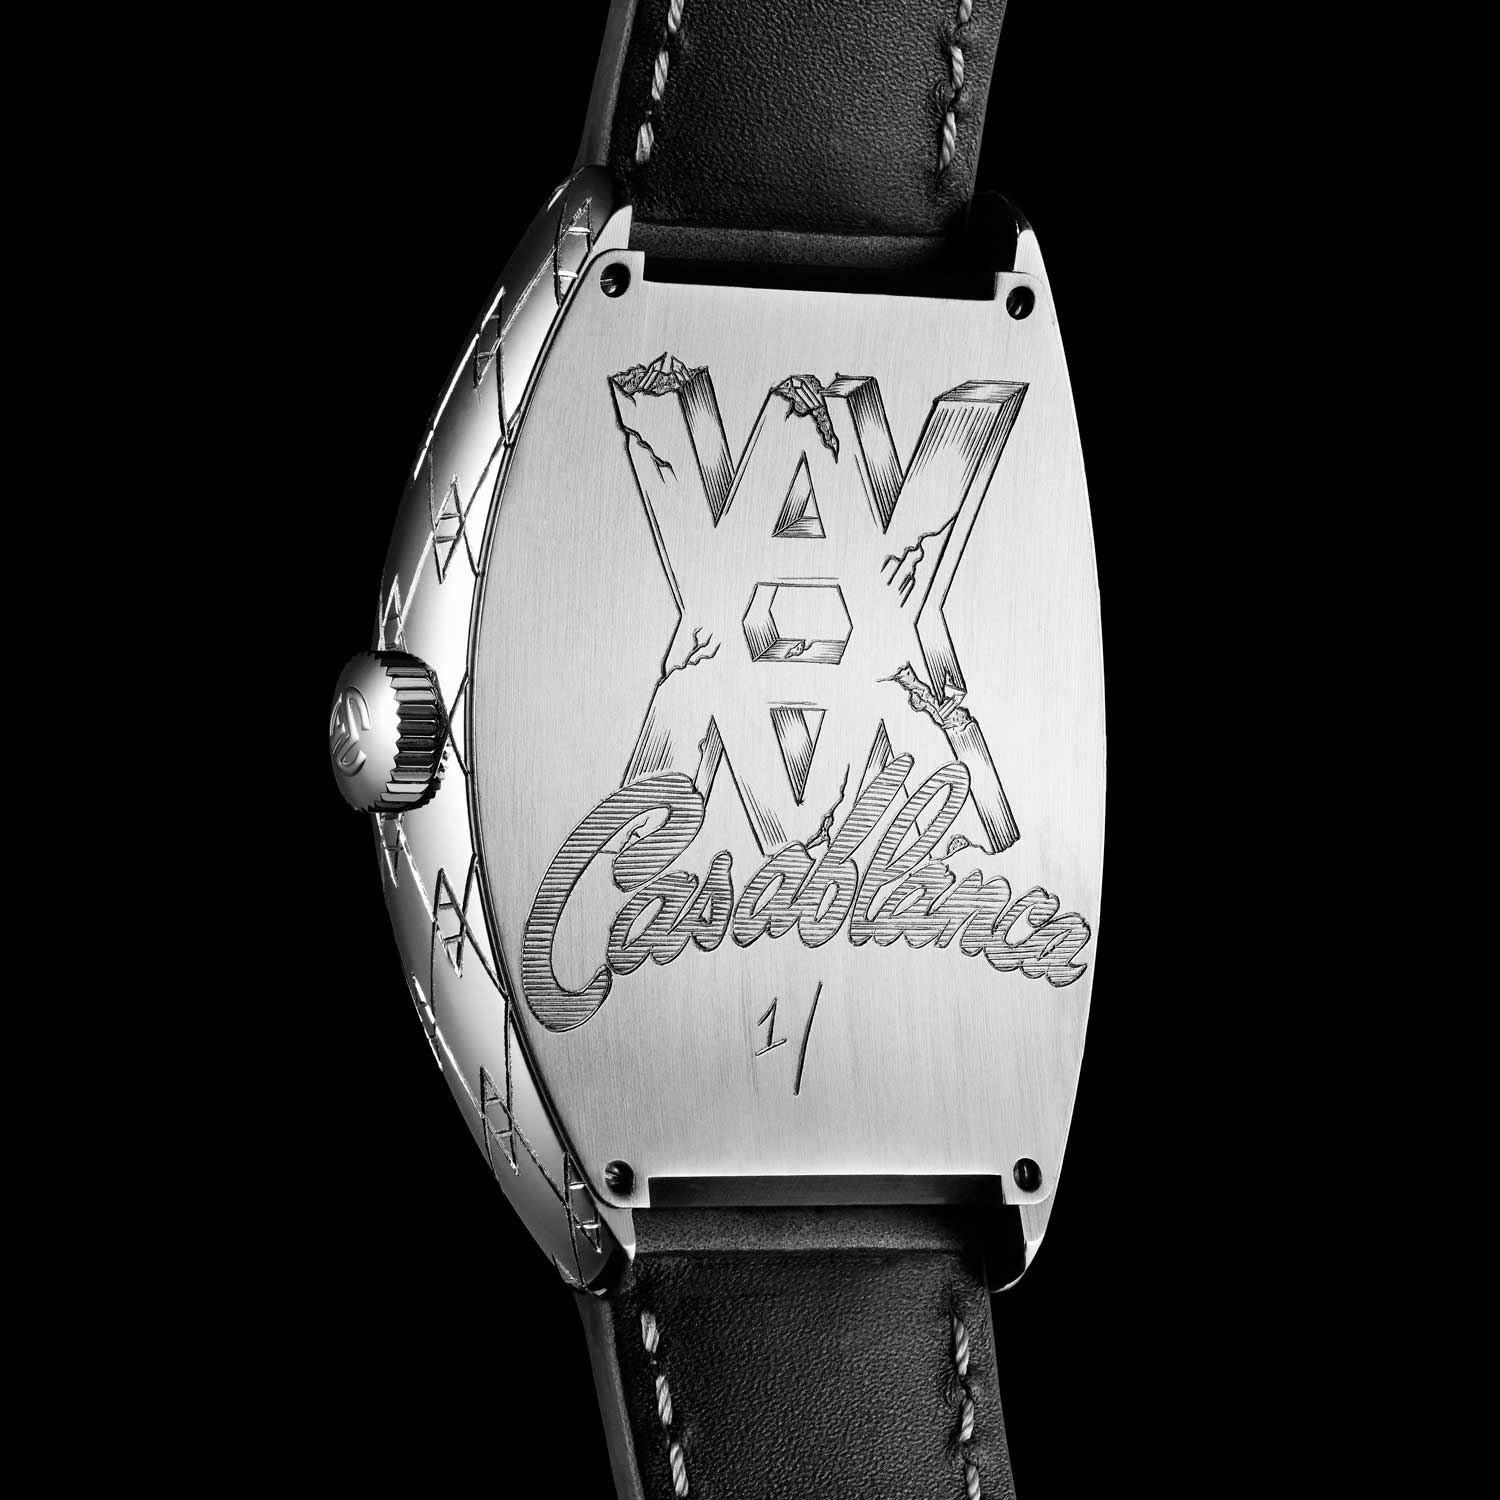 The Arsham Studio Monogram is wrapped all the way around the watch, from the dial to the embossed leather strap, into the case itself, with the engraving all done by hand.